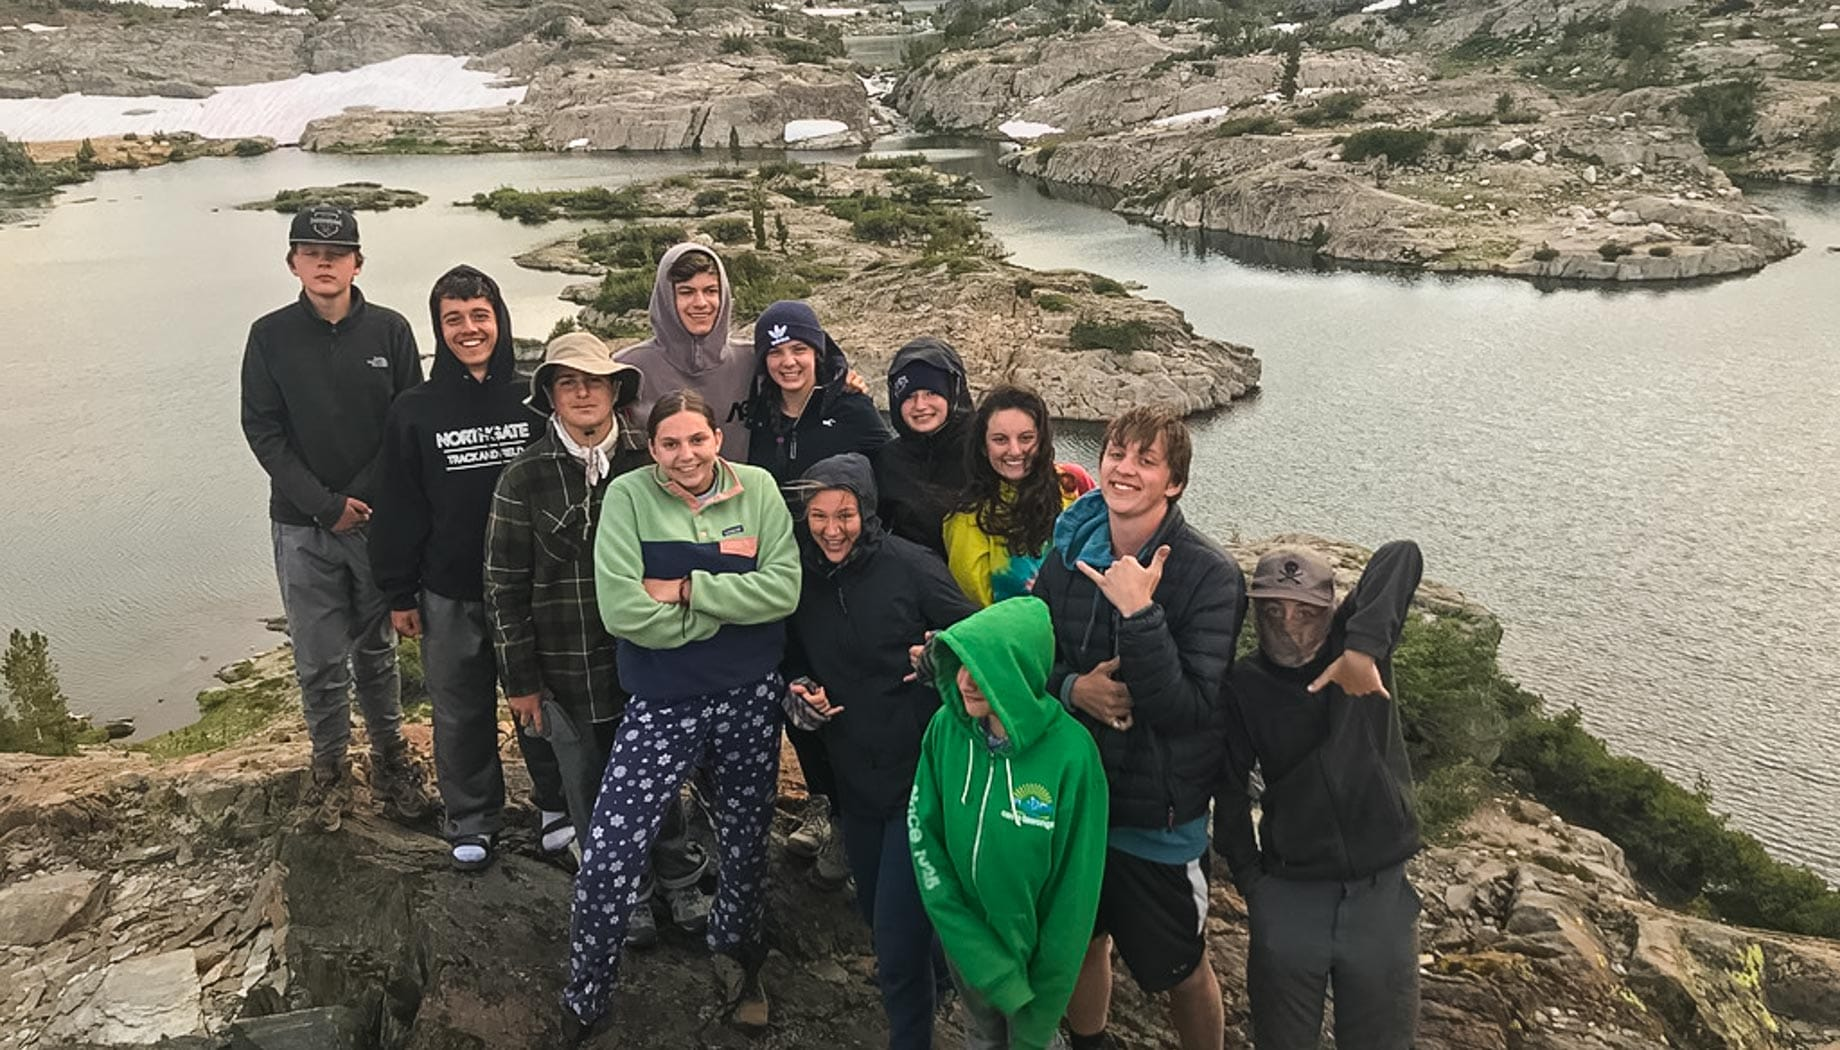 Campers hiking on the Rock and River quest